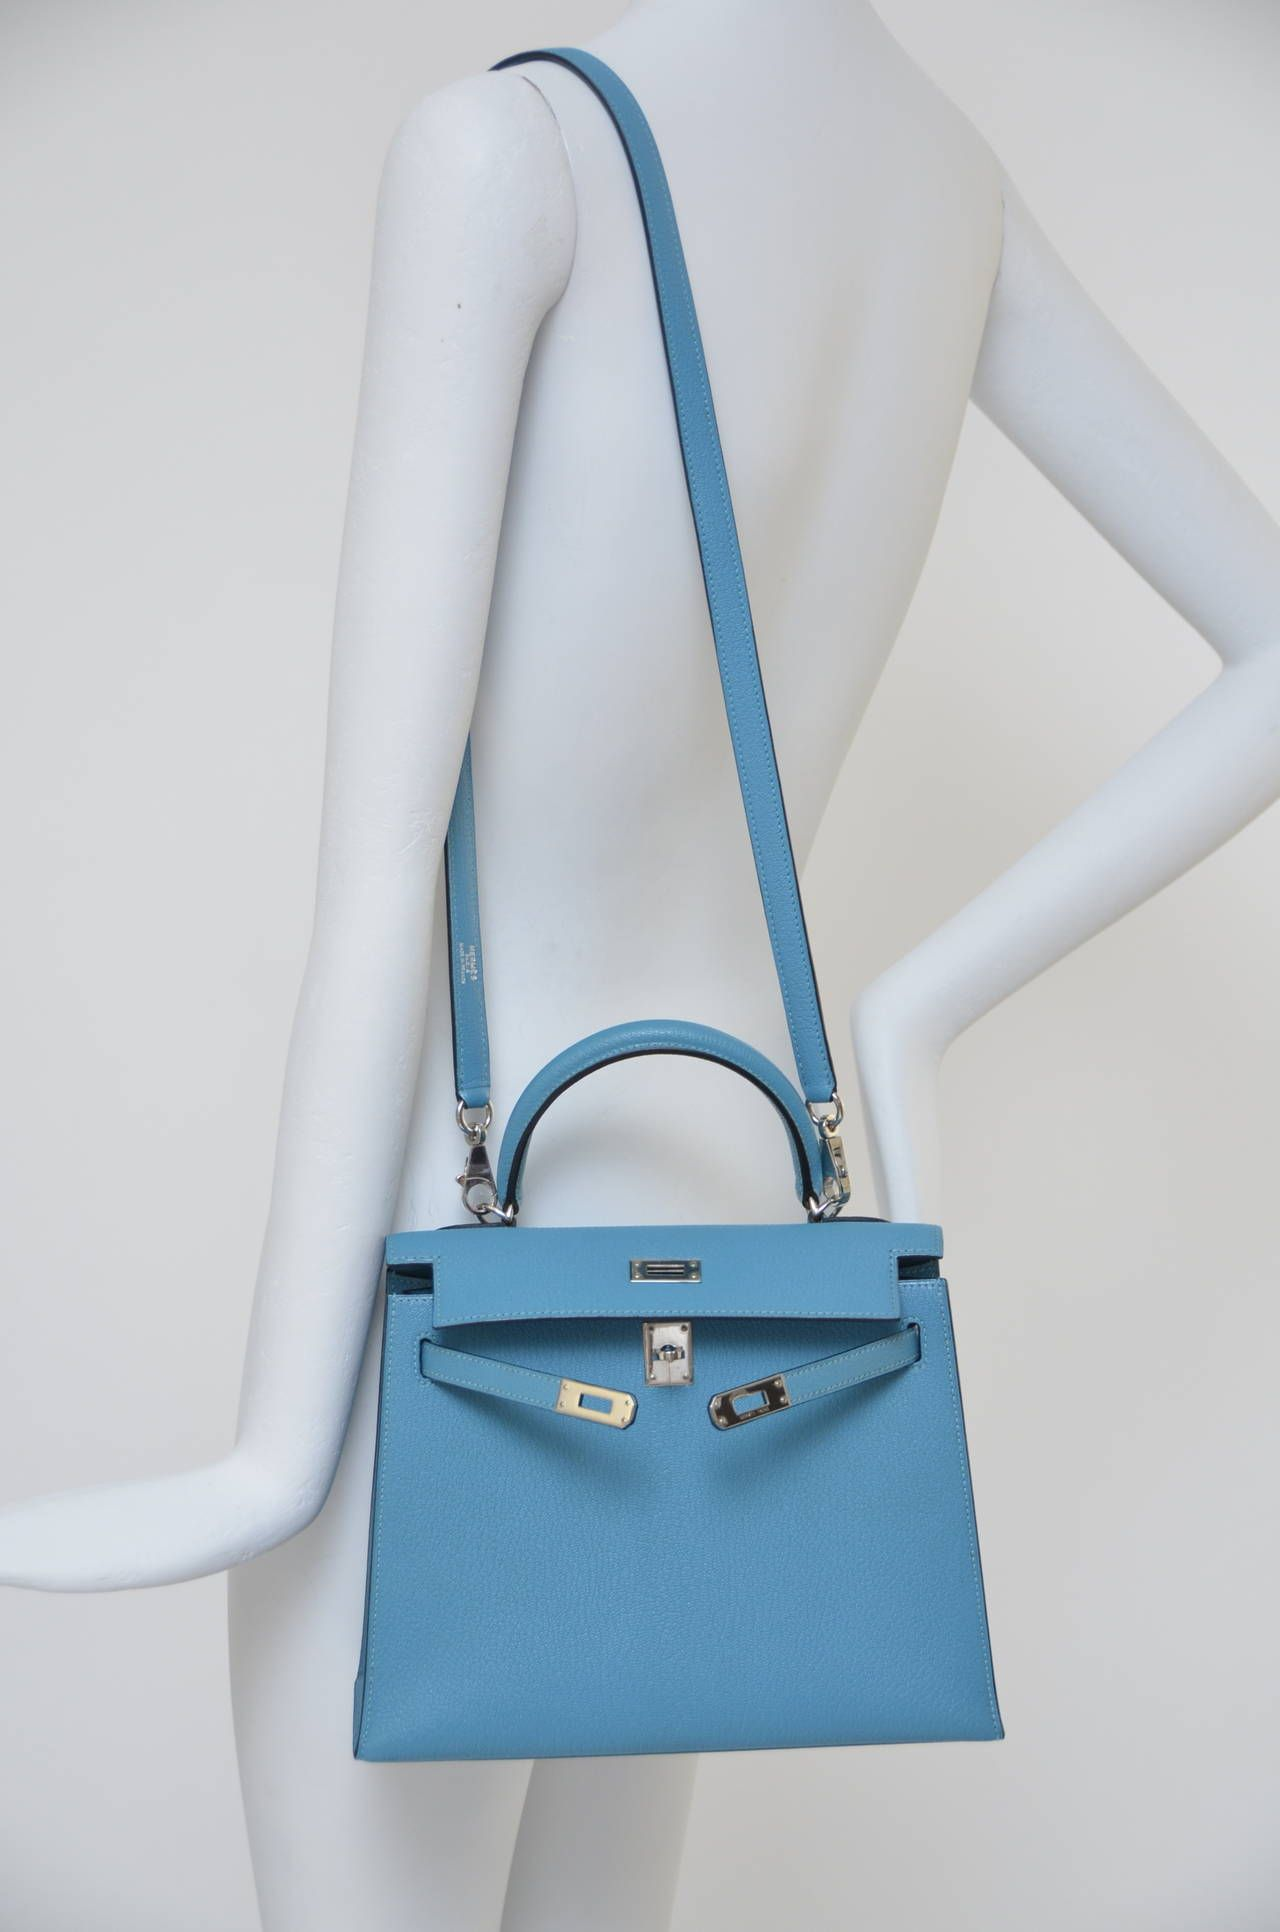 Rare Hermes Mini Kelly 25 Cm Palladium Hardware NEW   All about my ... 9ff55eb9c9